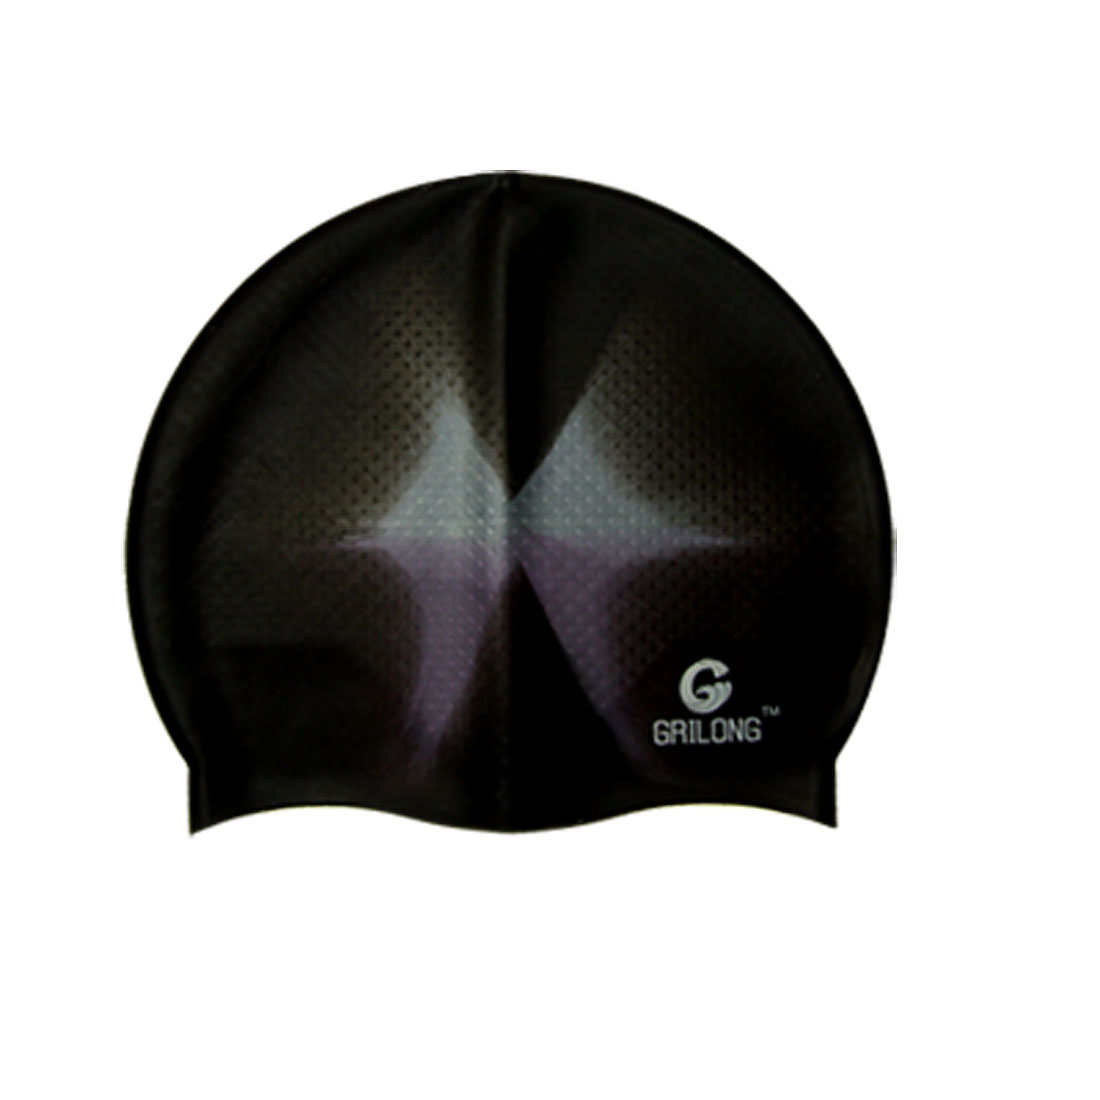 Skidproof Flexible Silicone Swim Hat Swimming Cap